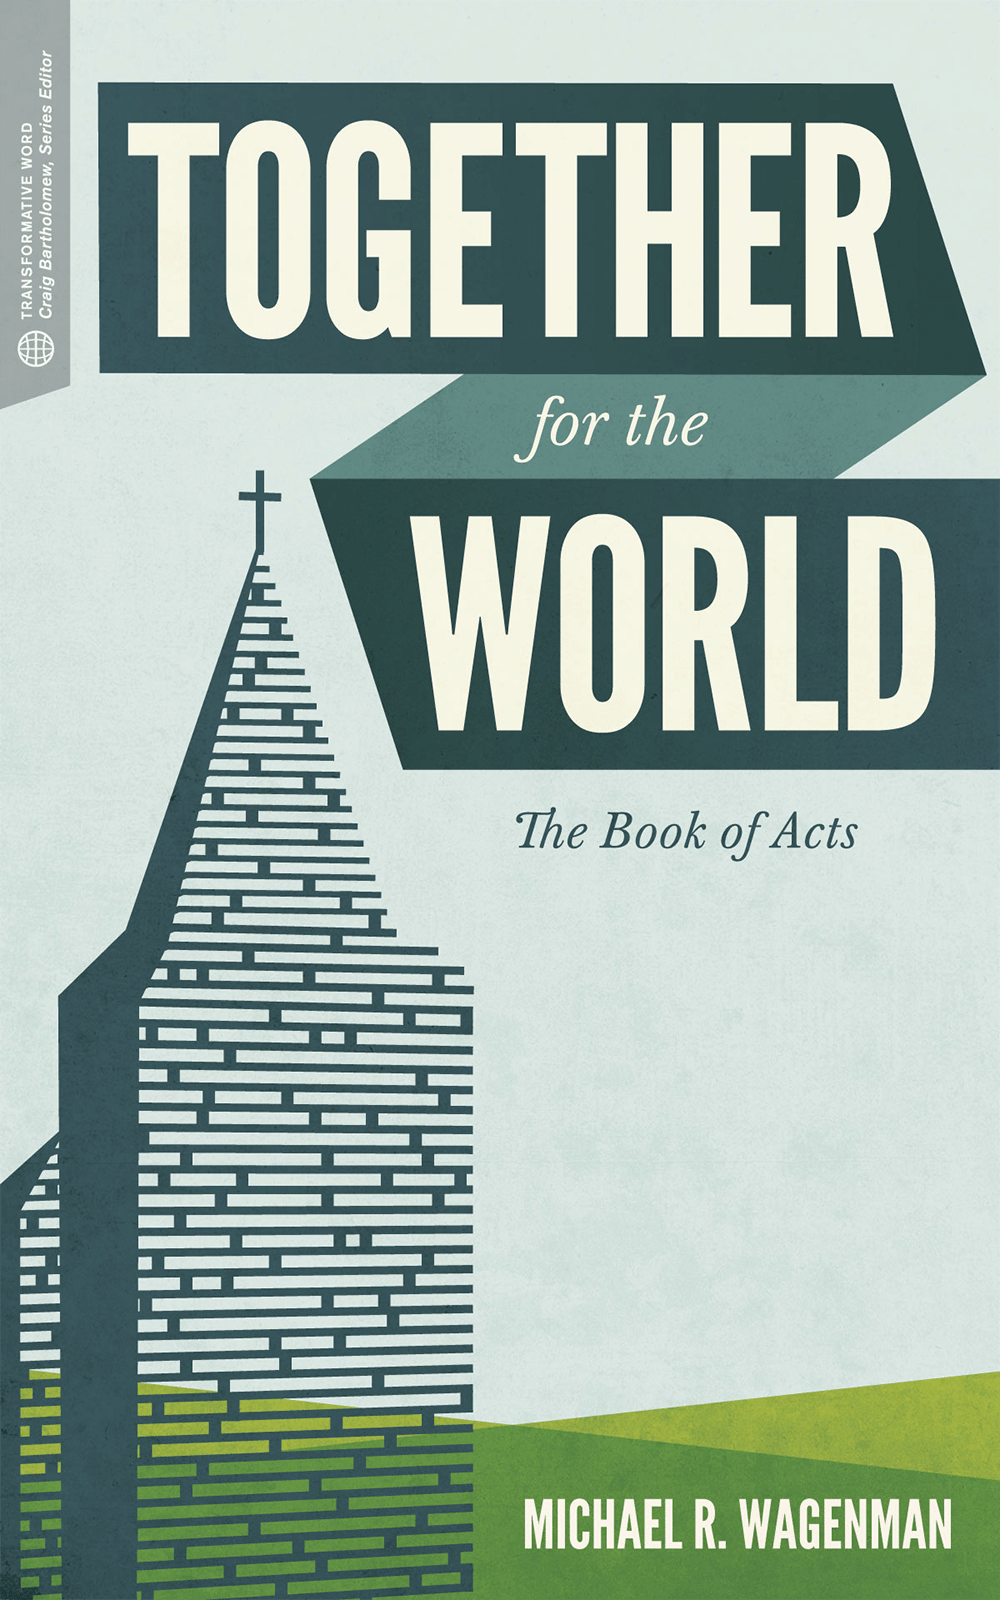 Together for the World